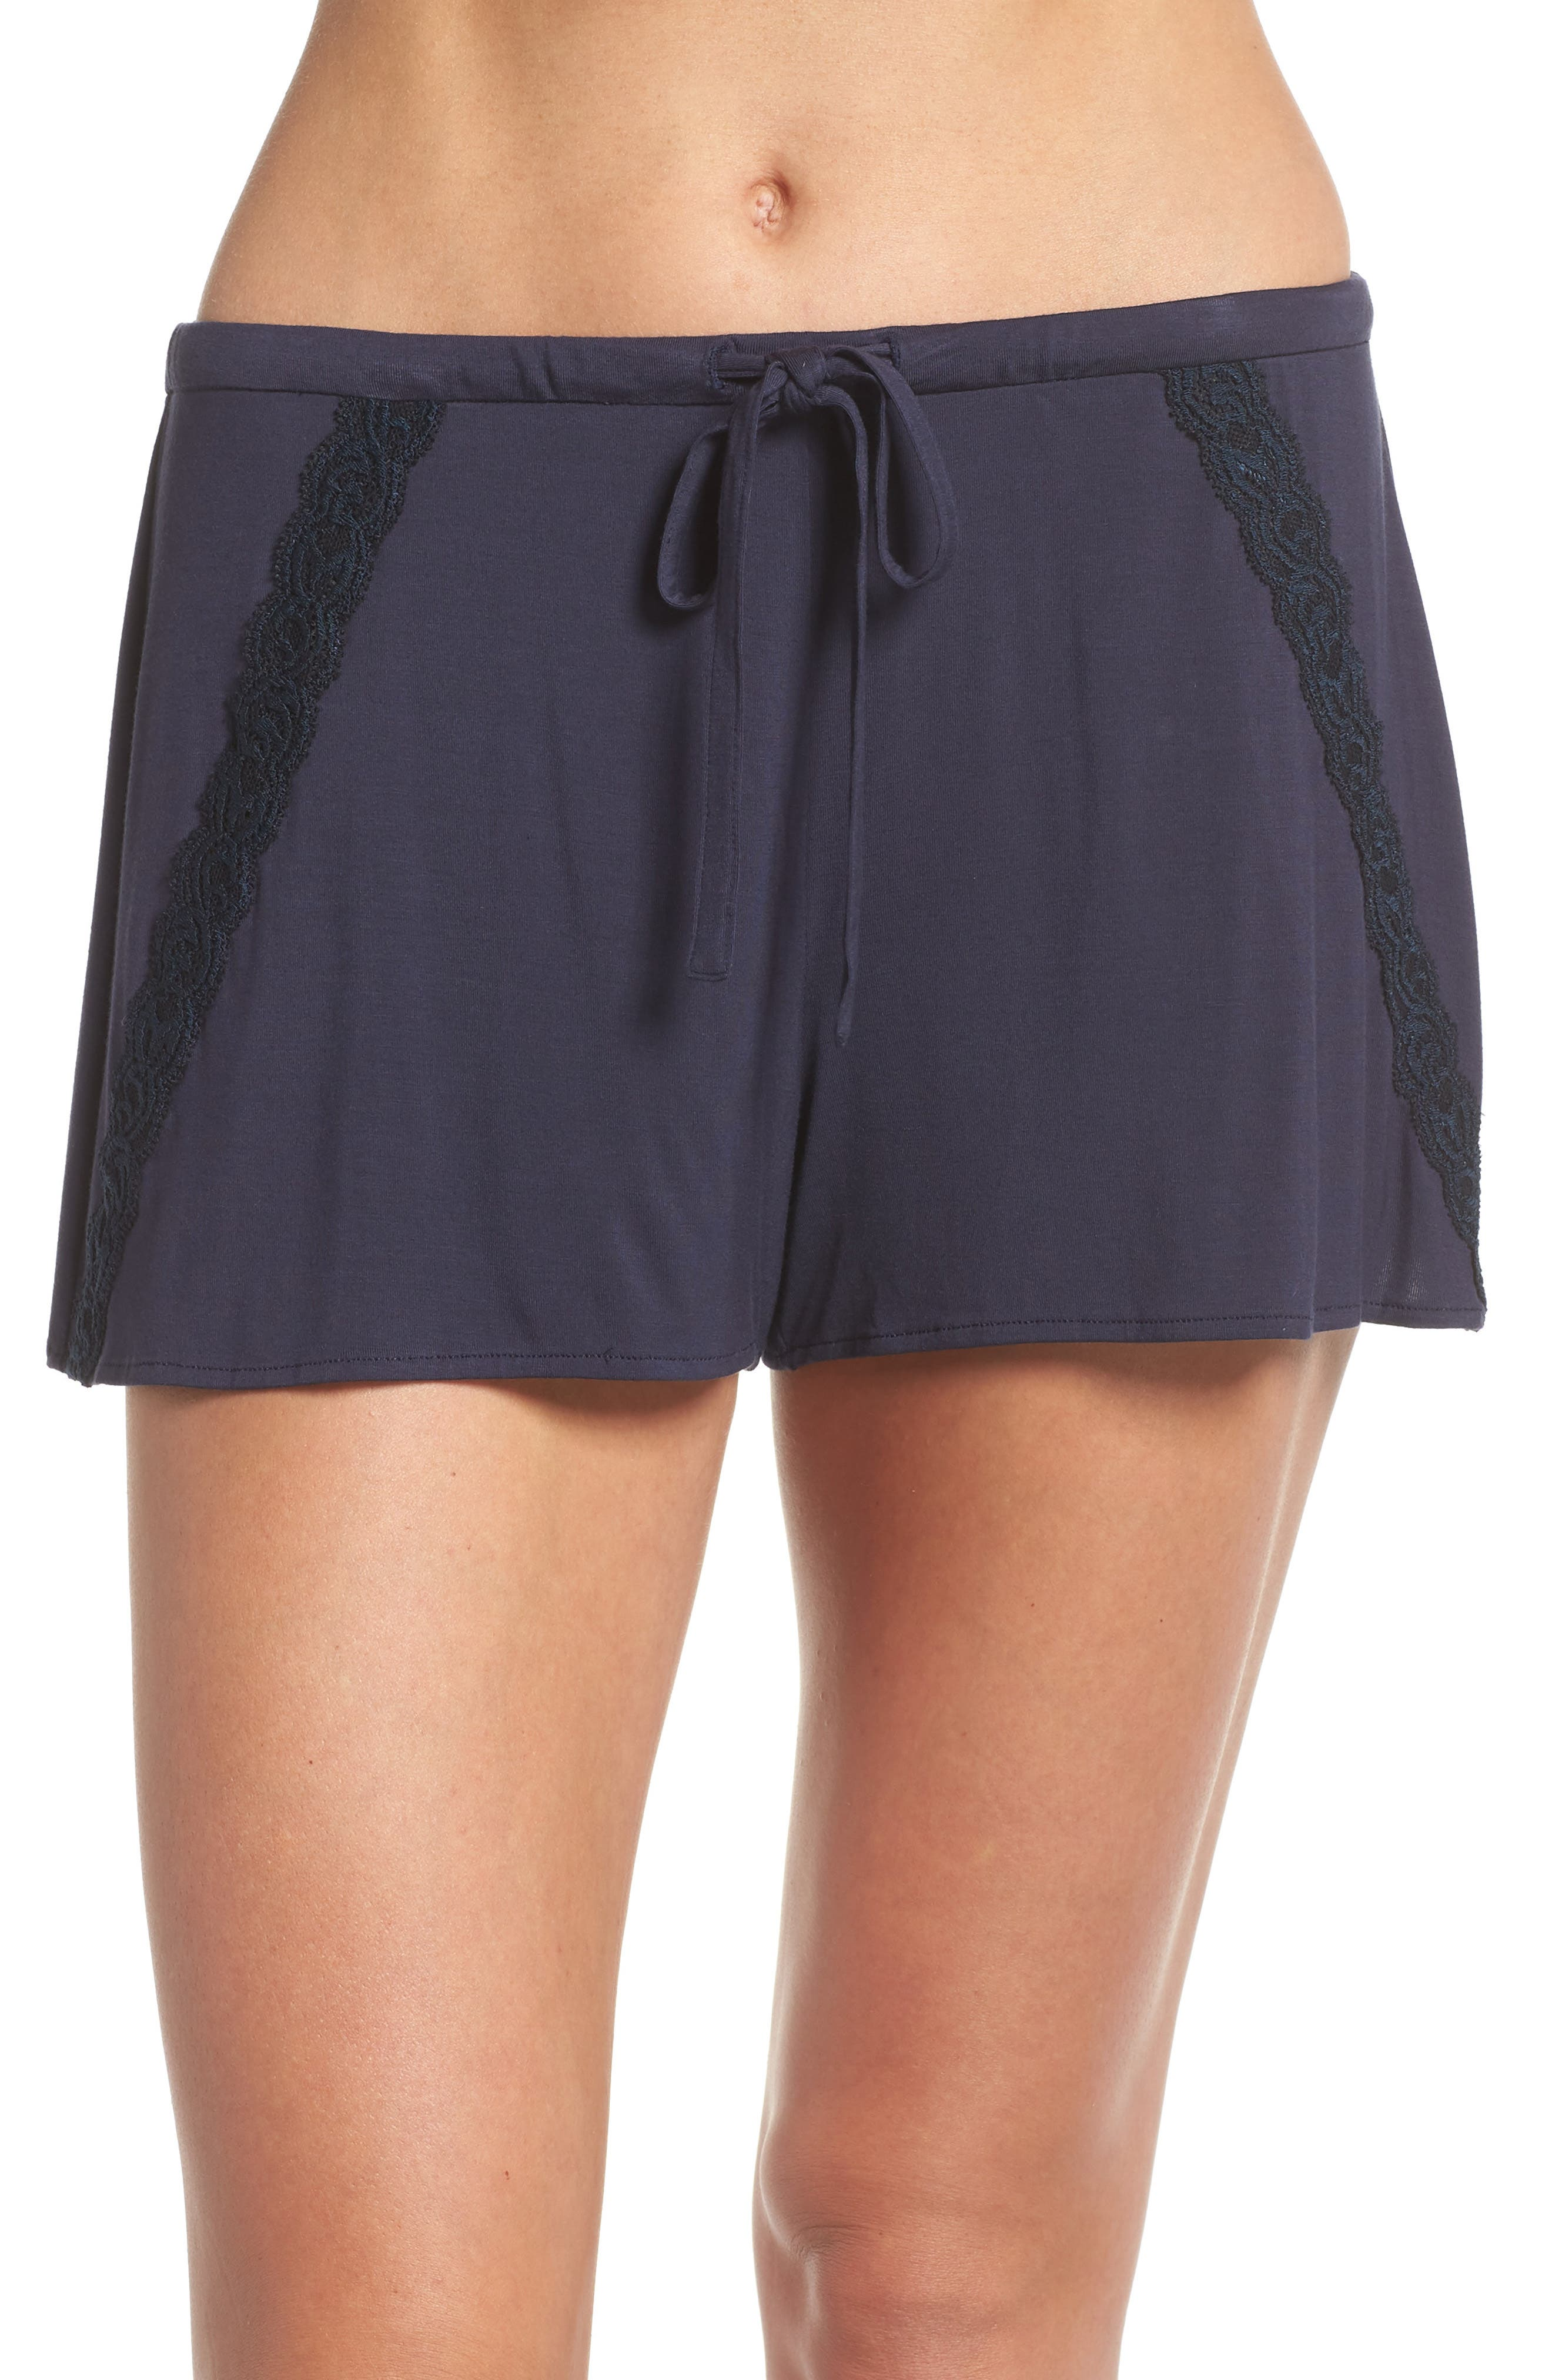 Feathers Essential Pajama Shorts,                         Main,                         color, Night Blue